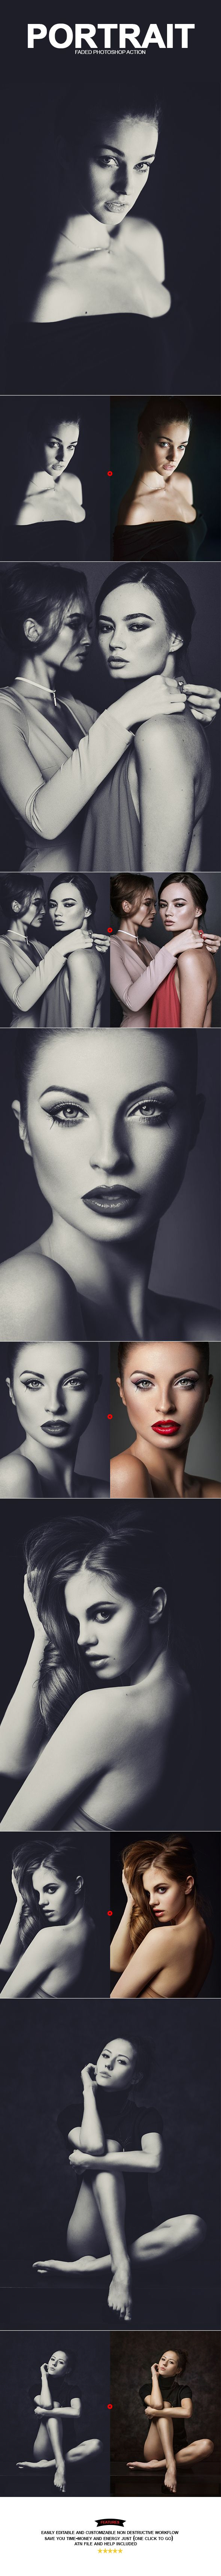 Portrait Faded Photoshop Action  — Photoshop Action #b&w #Portrait Fashion • Download ➝ https://graphicriver.net/item/portrait-faded-photoshop-action/18214414?ref=pxcr